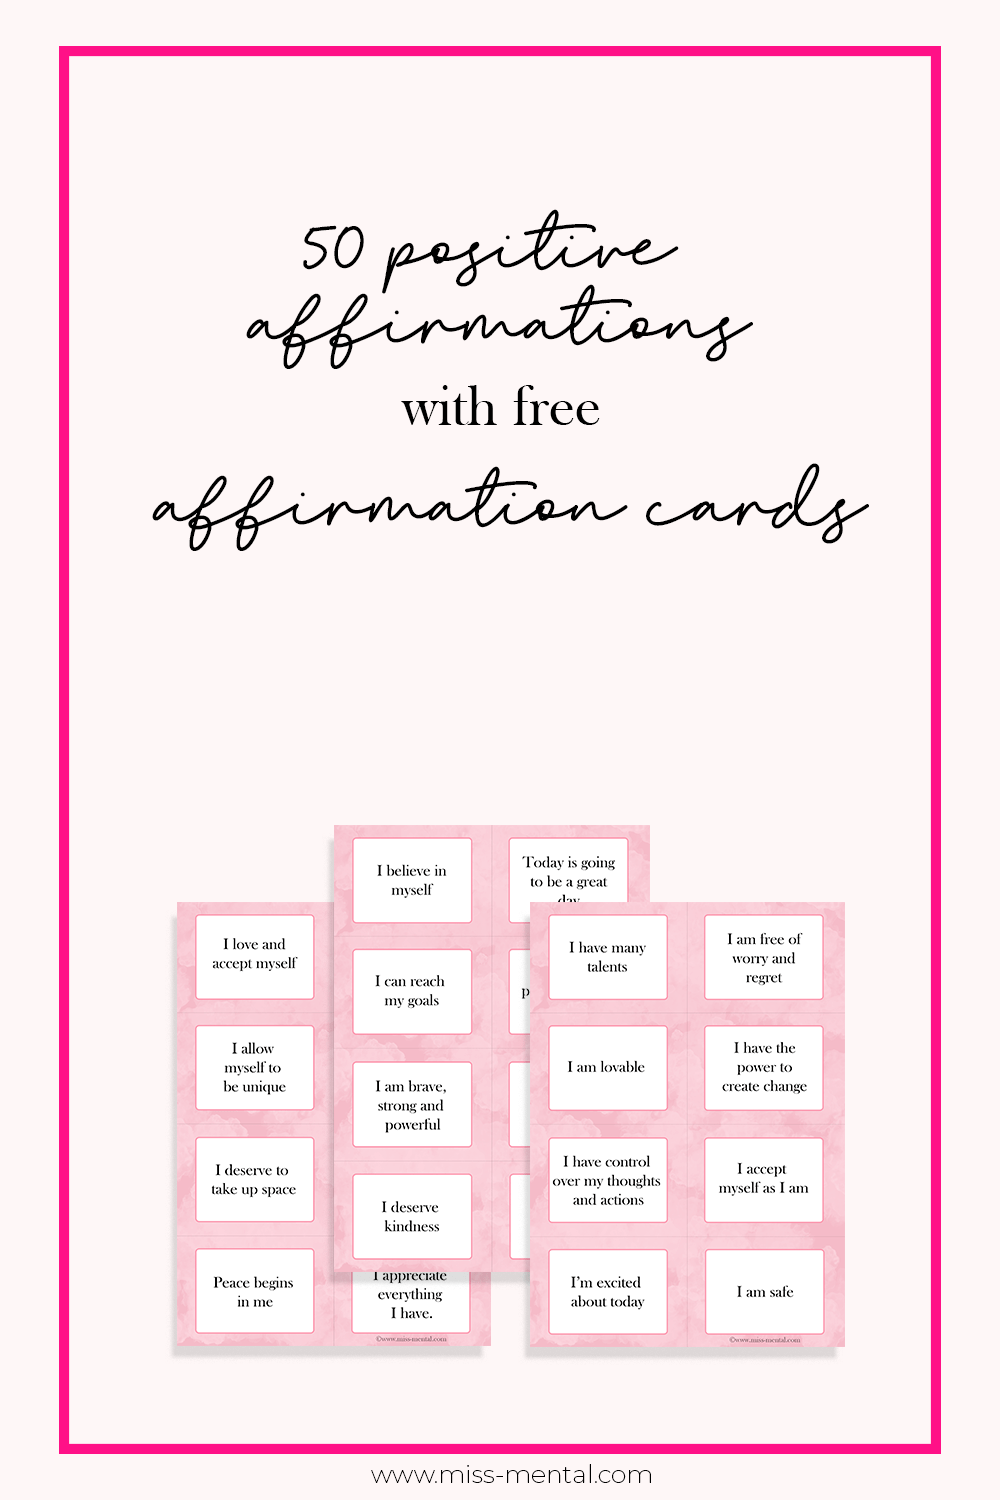 50 positive affirmations with helpful free affirmation cards. What are affirmations? Positive affirmations are statements that can help you challenge negative thoughts and help you live a positive life. affirmations for women